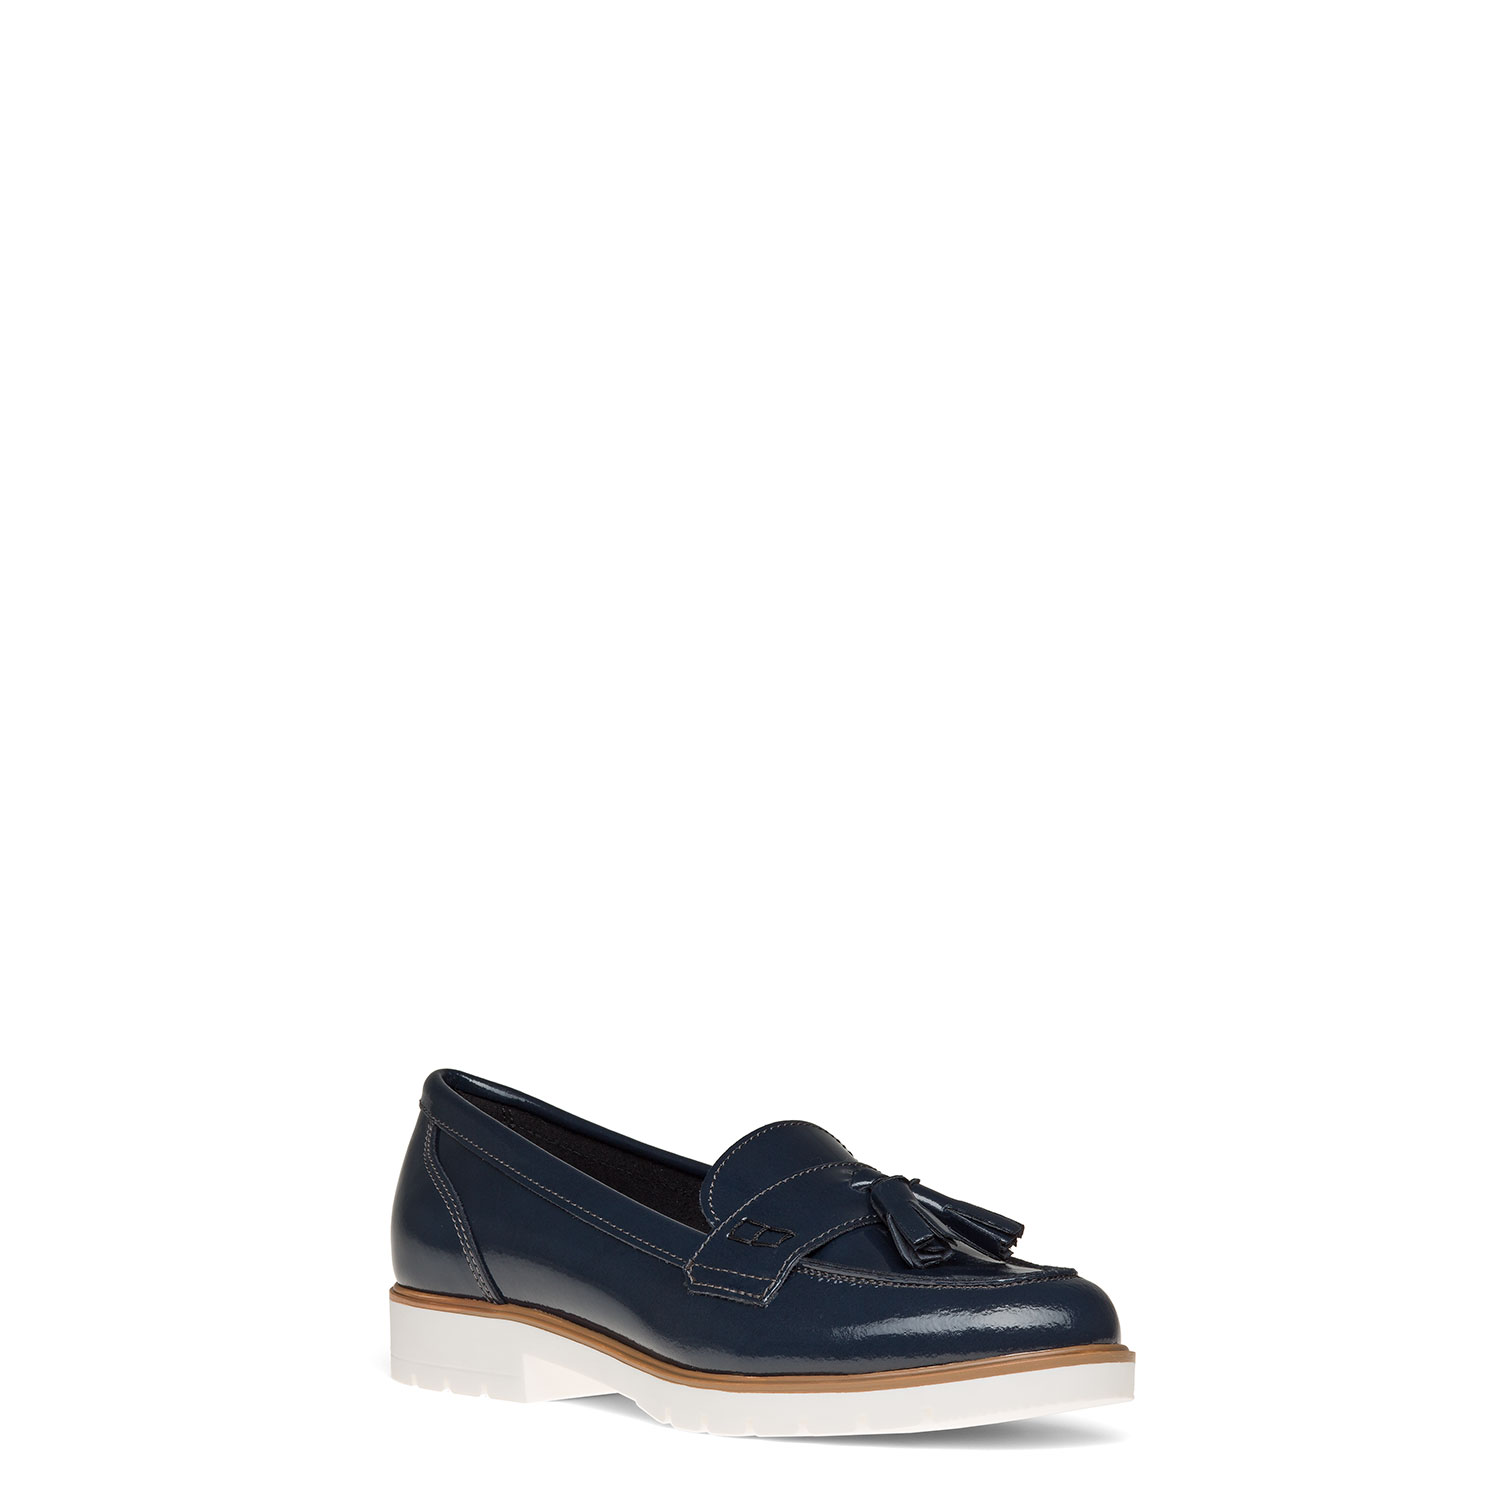 Women's shoes CARLO PAZOLINI SI-X0532-6